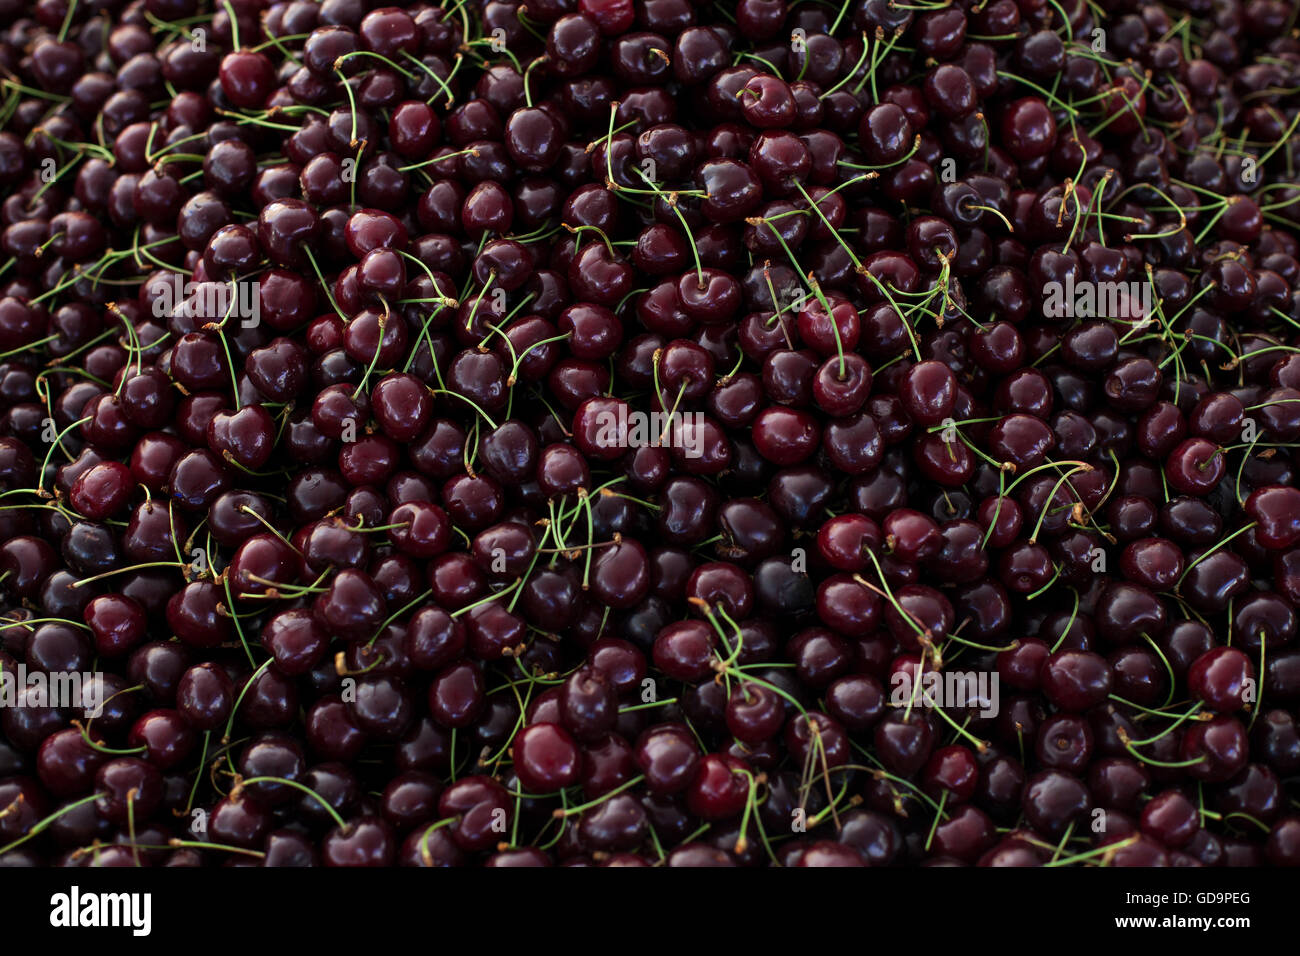 Fresh cherries at a market - Stock Image